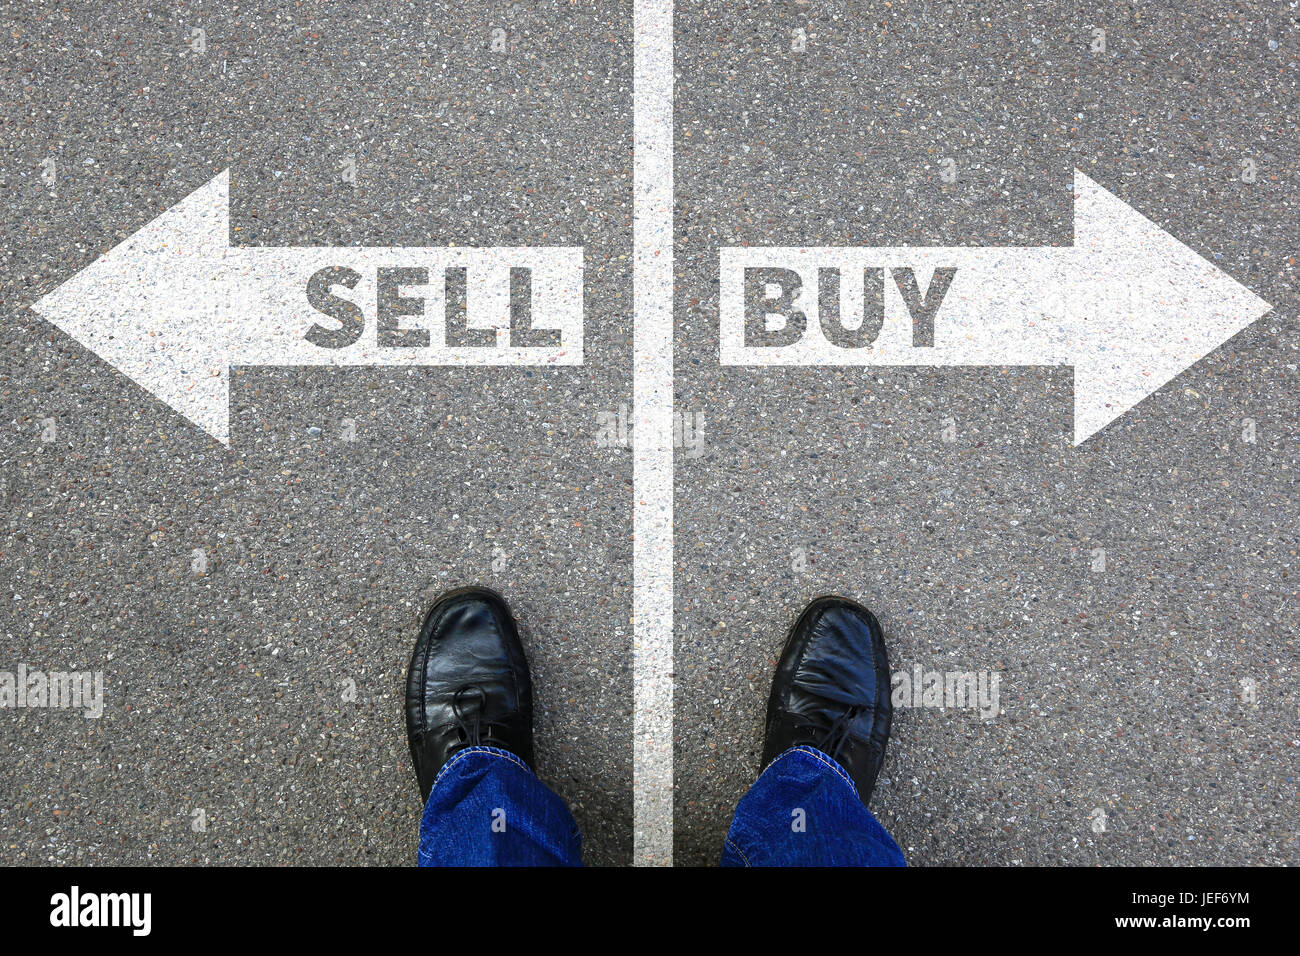 Sell buy selling buying goods stock exchange banking business concept import - Stock Image